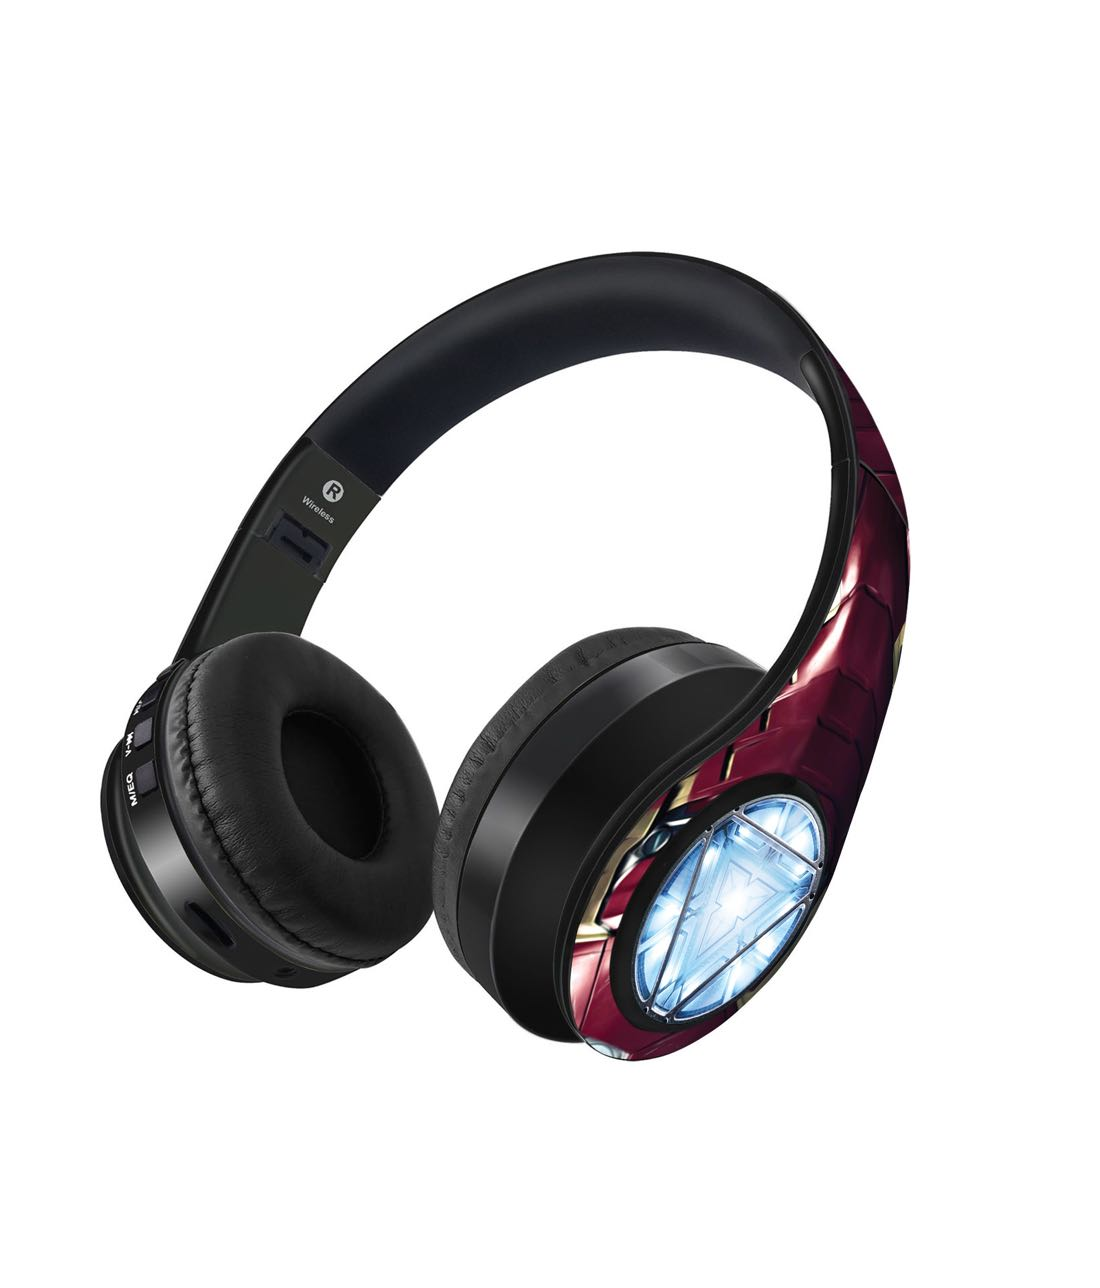 Suit up Ironman - Decibel Wireless On Ear Headphones